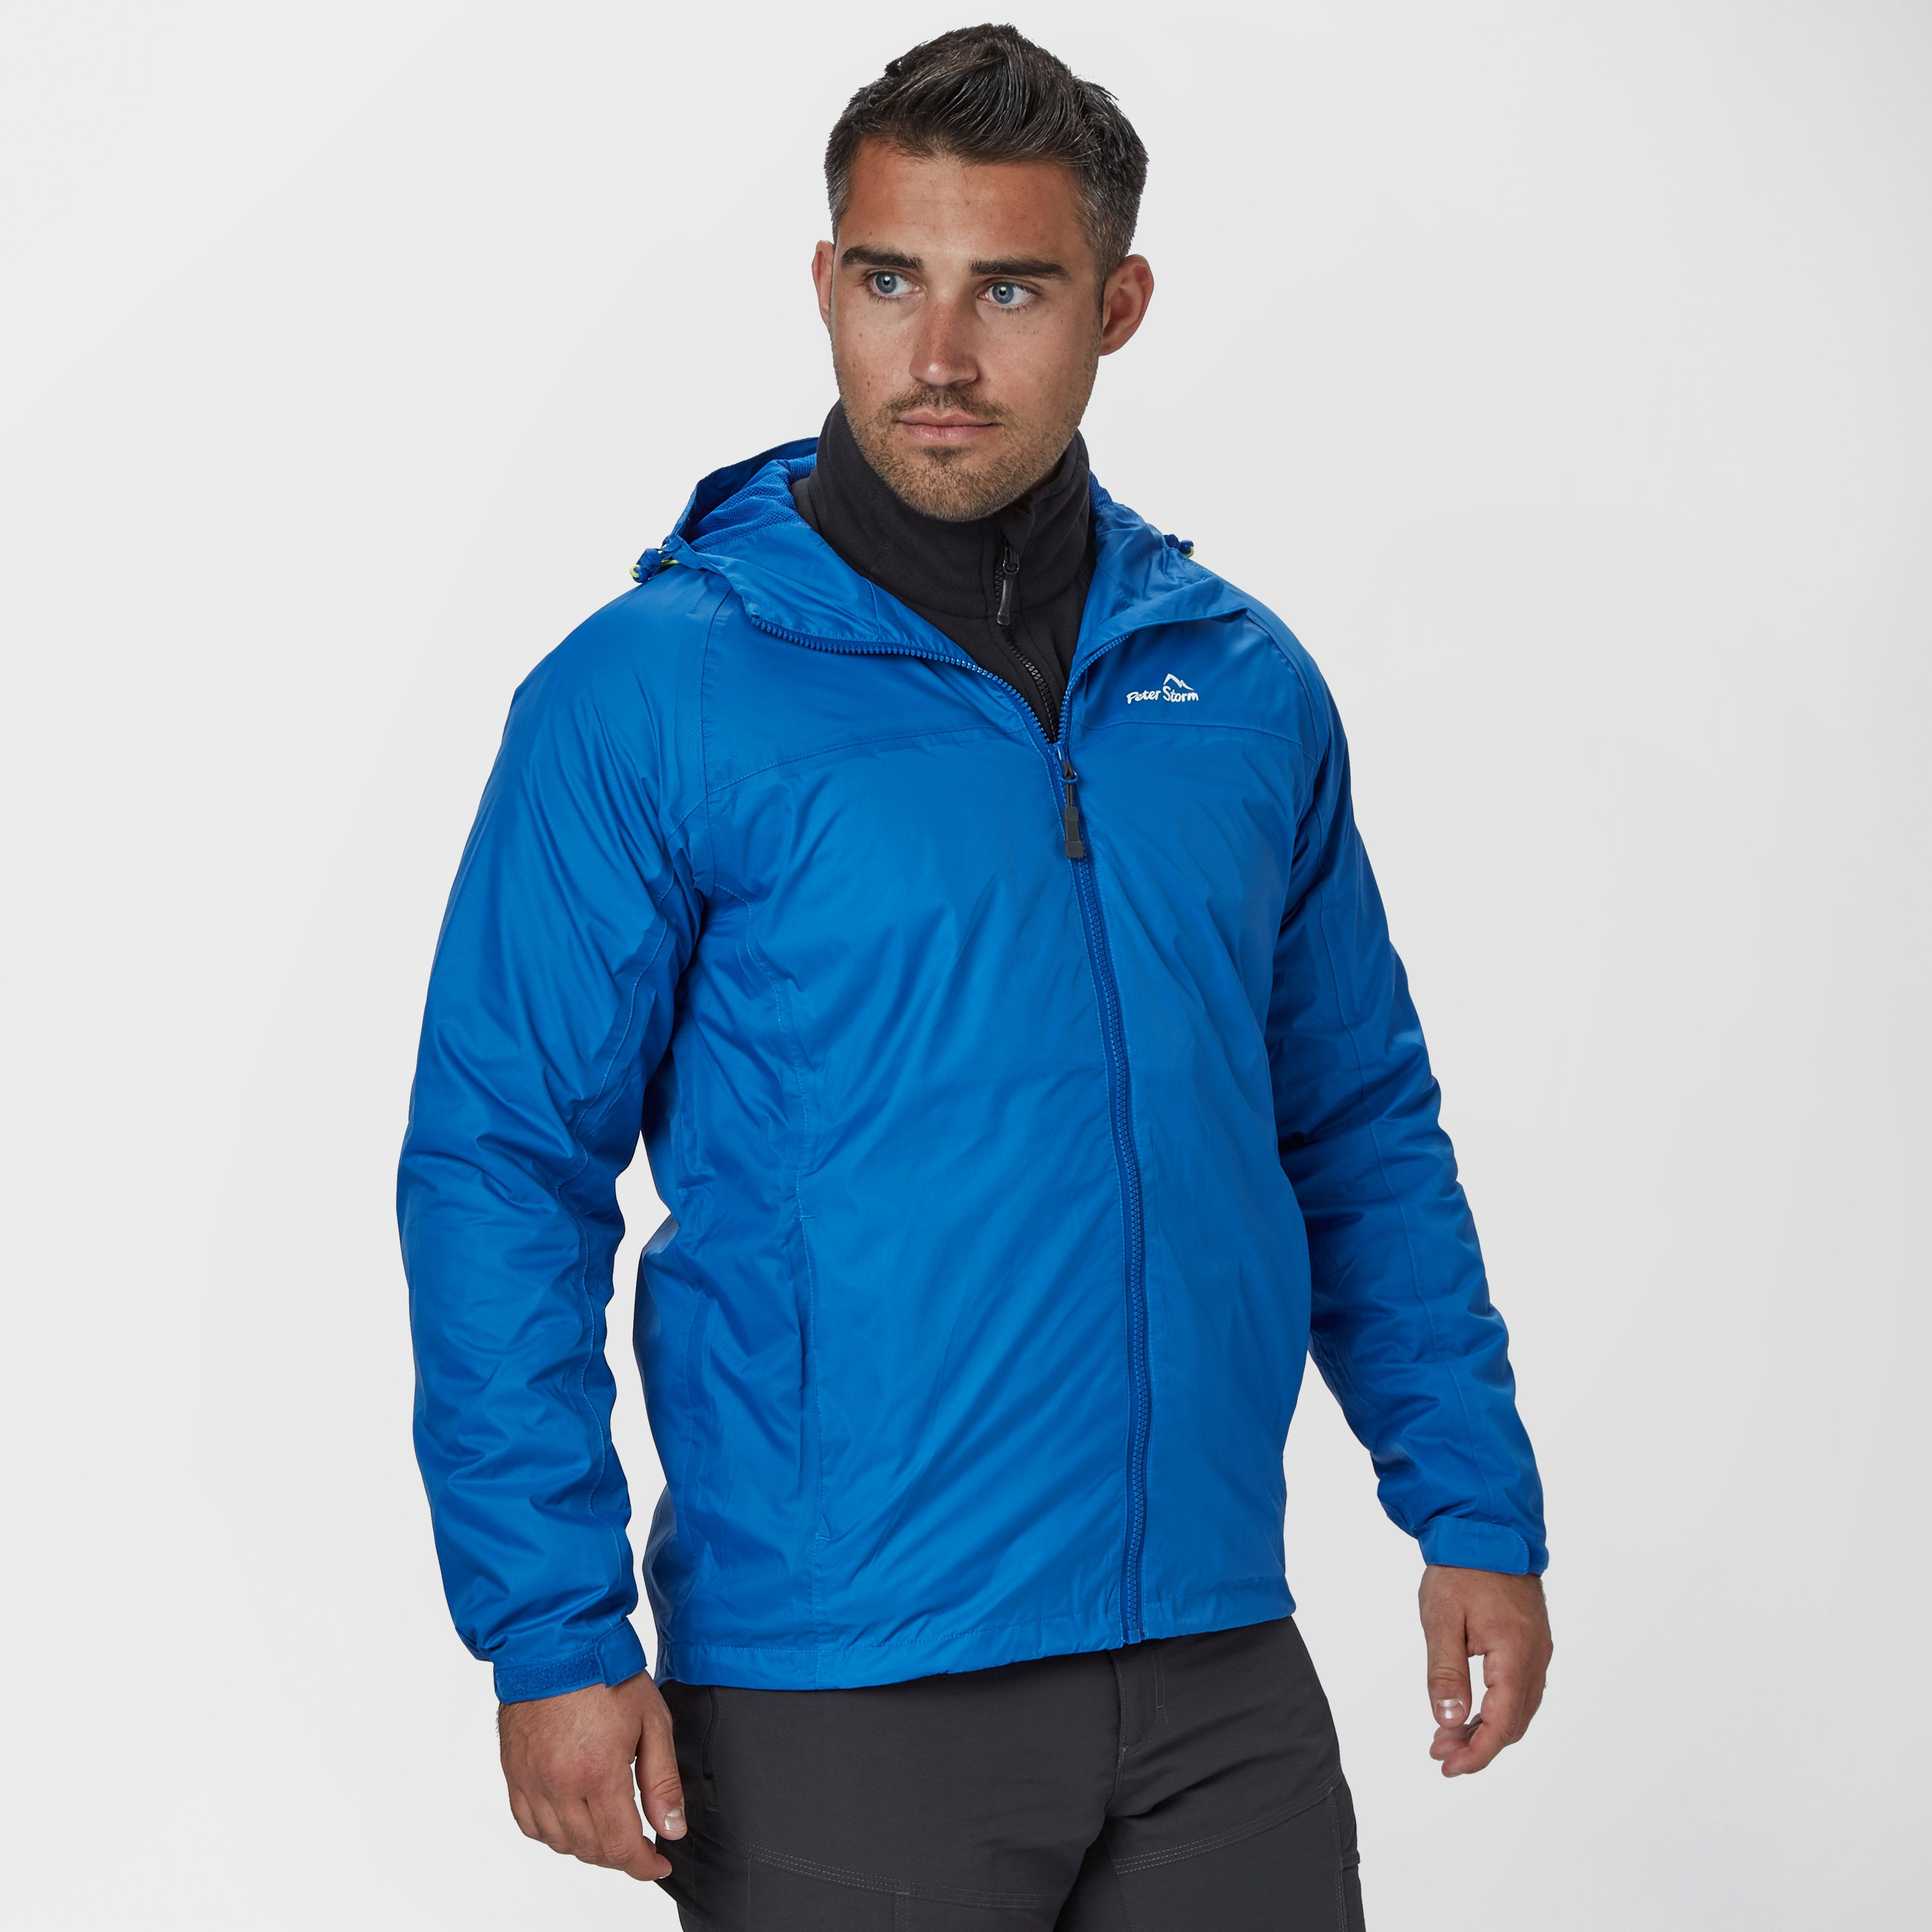 PETER STORM Men's Techlite Jacket